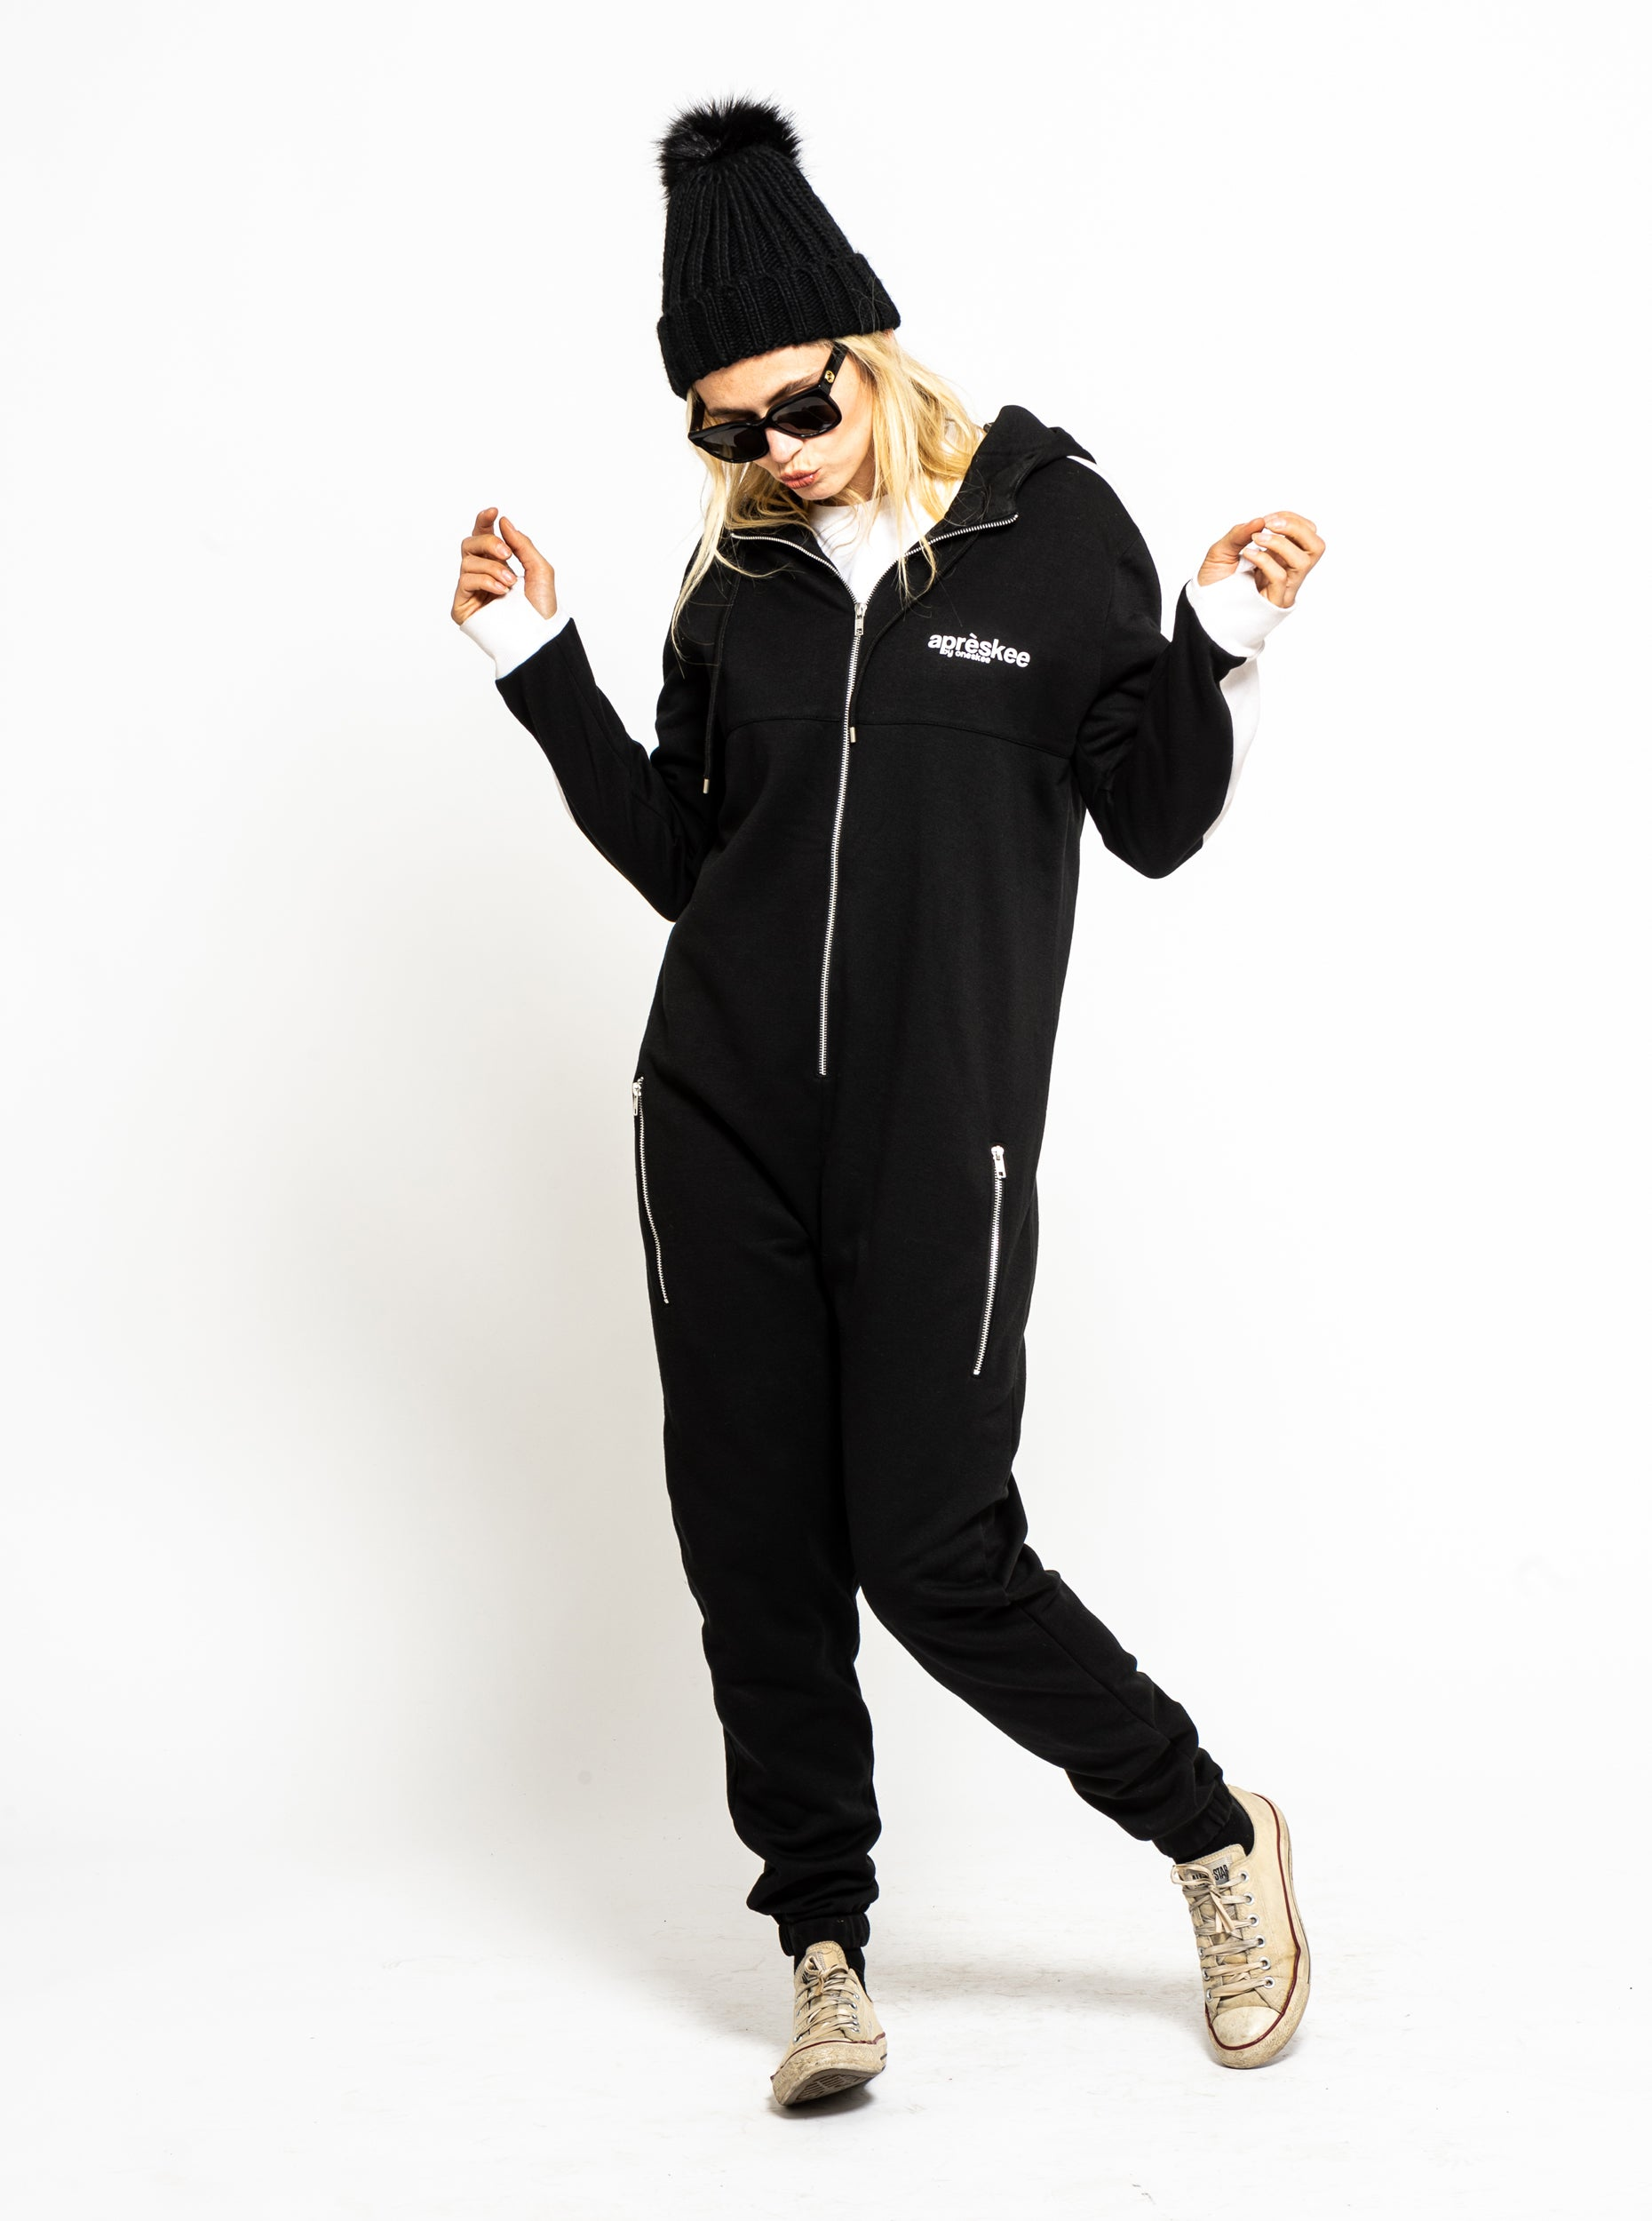 Apreskee One Piece Jumpsuit - Black image 4